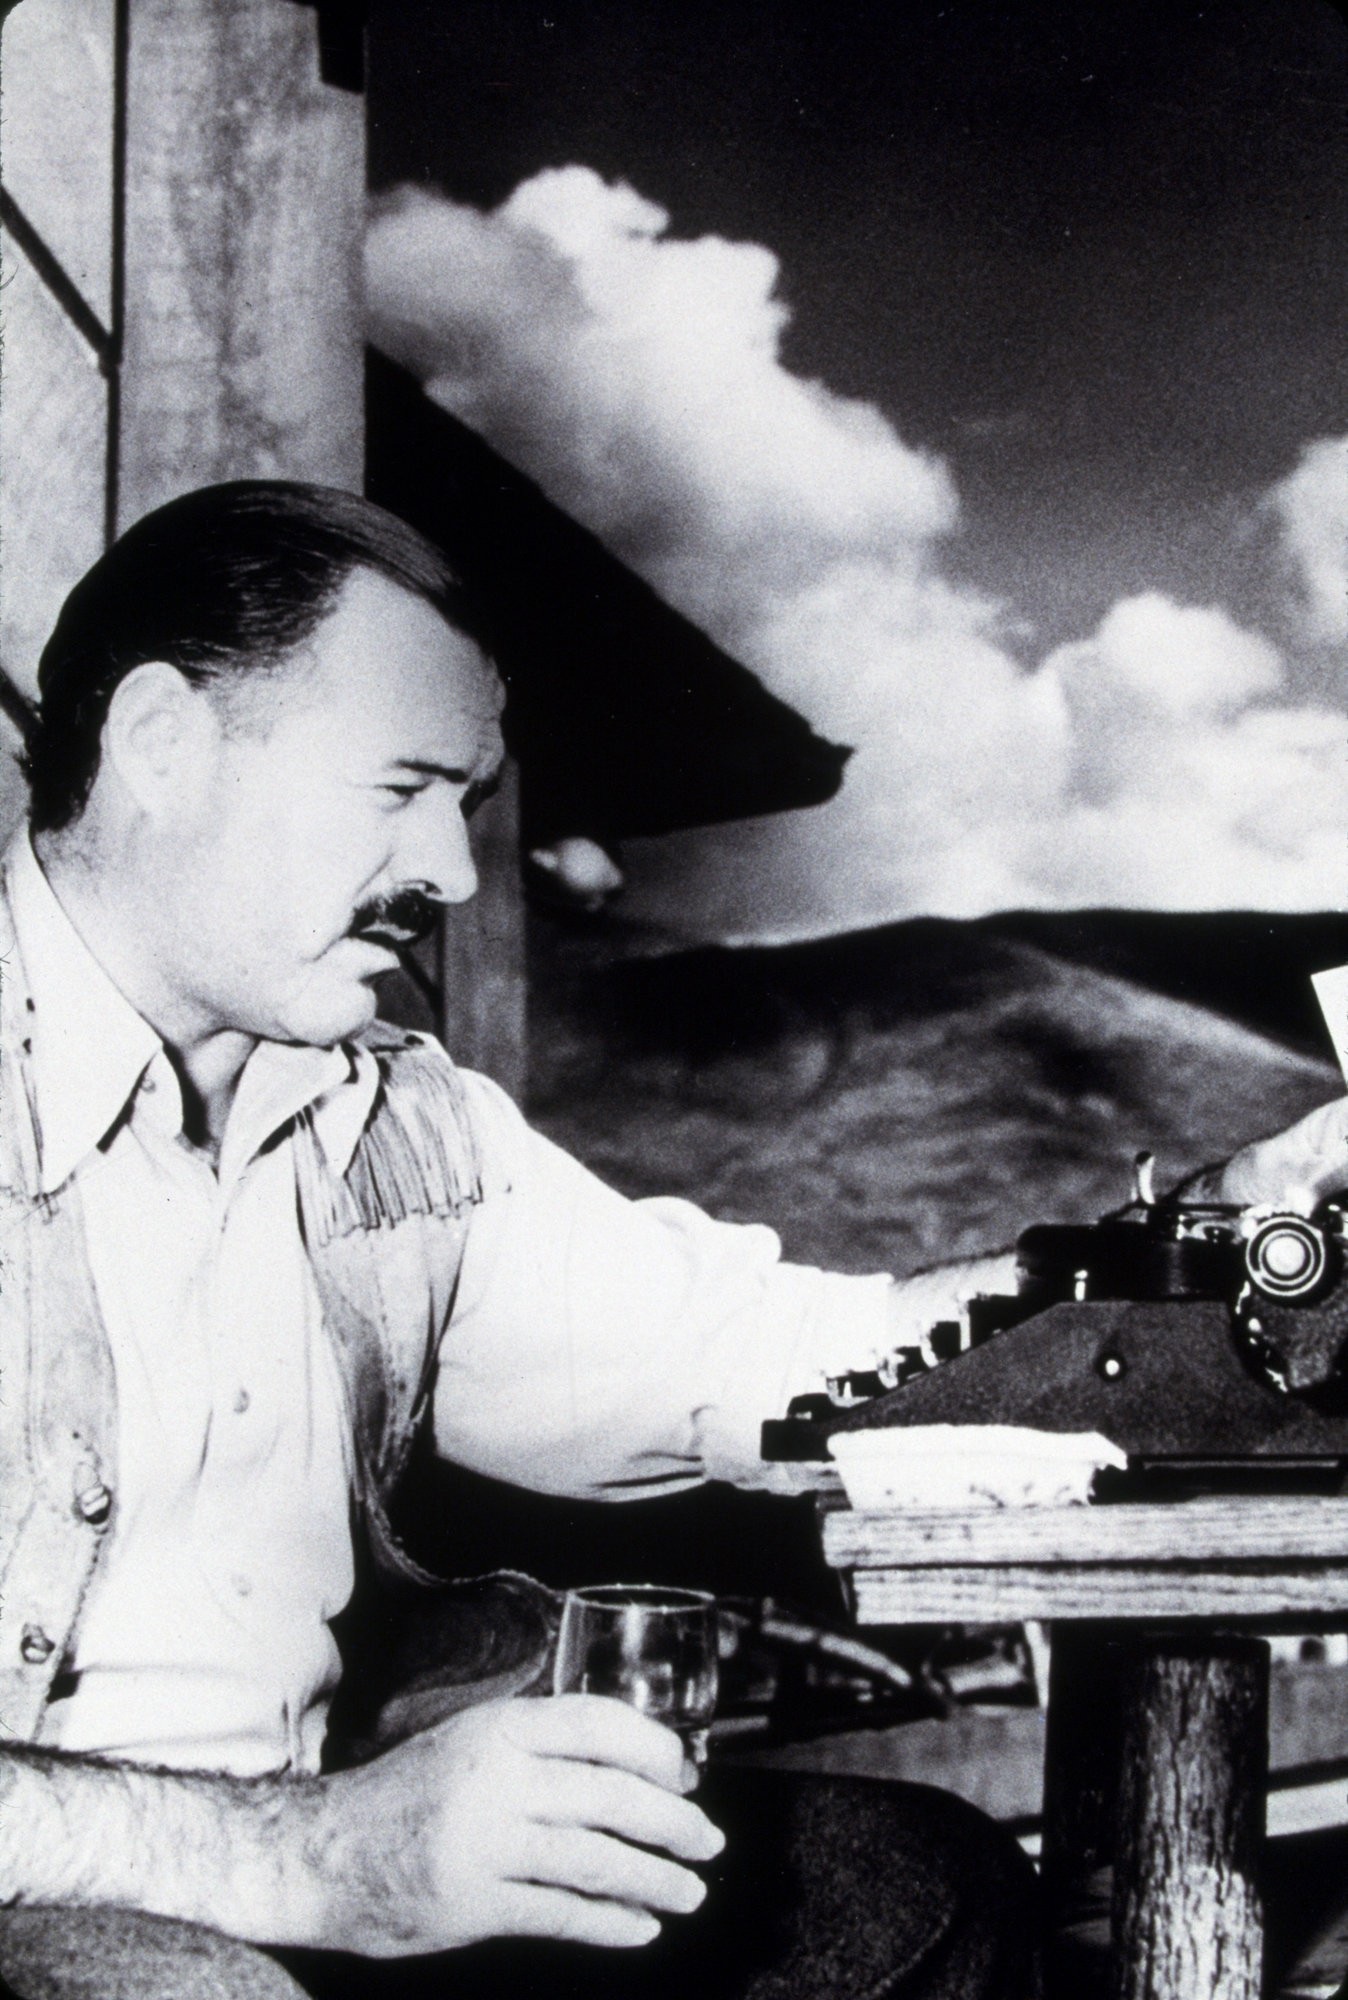 ernest hemingway 4 essay Research paper, essay on ernest hemingway free study resources: free term papers and essays on ernest hemingway we are offering free complimentary access to thousands of free essays and term papers on almost every subject imaginable.